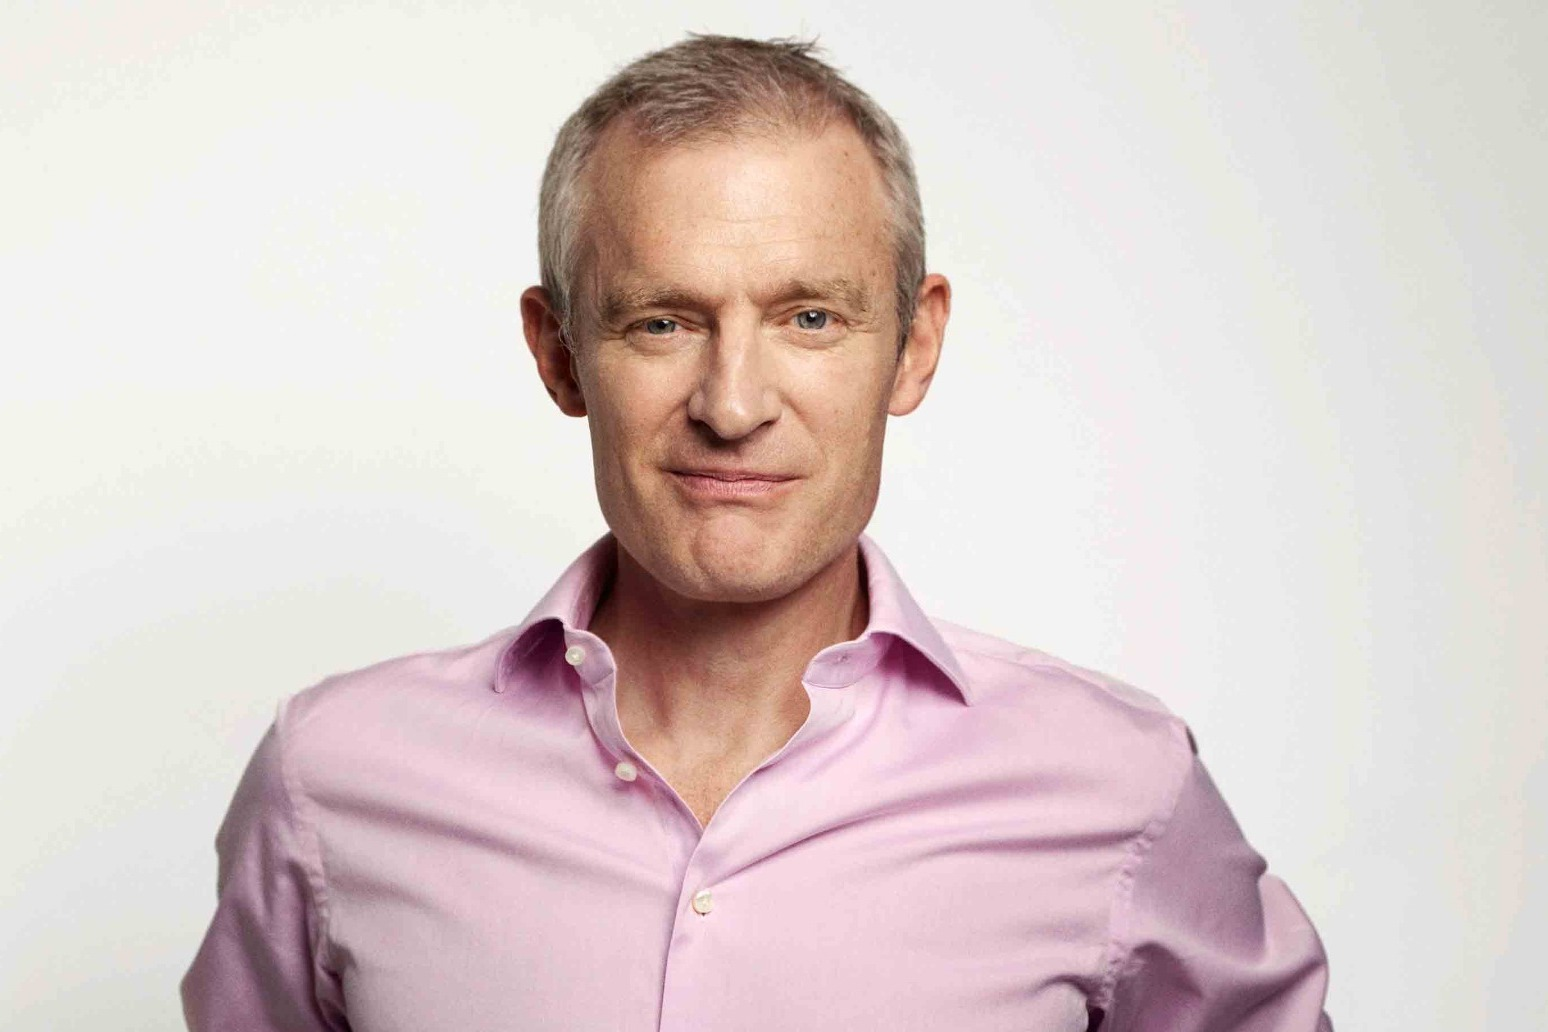 Jeremy Vine 'unnerved' after anti-vaccine protesters target his home